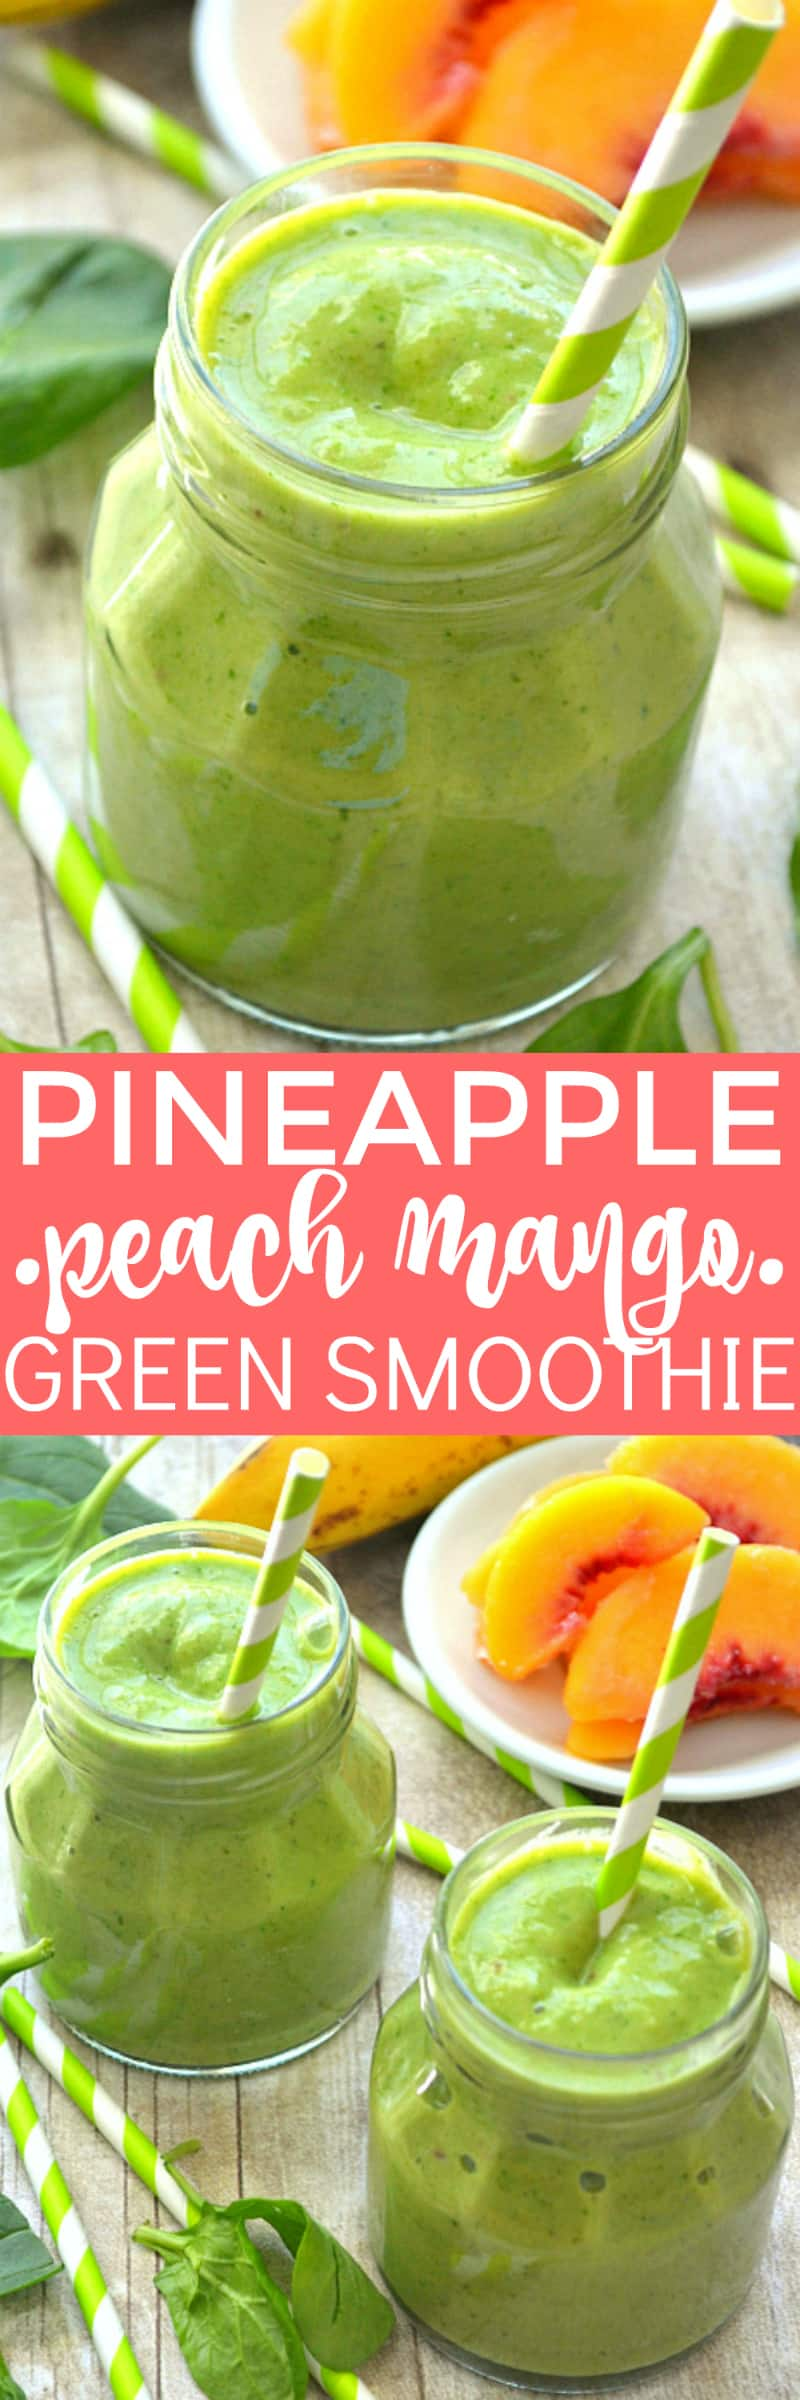 This Pineapple Peach Mango Green Smoothie is a delicious taste of the tropics! Loaded with peaches, mango, pineapple juice, bananas, and spinach....this smoothie is flavor-packed and perfect for any time of day!